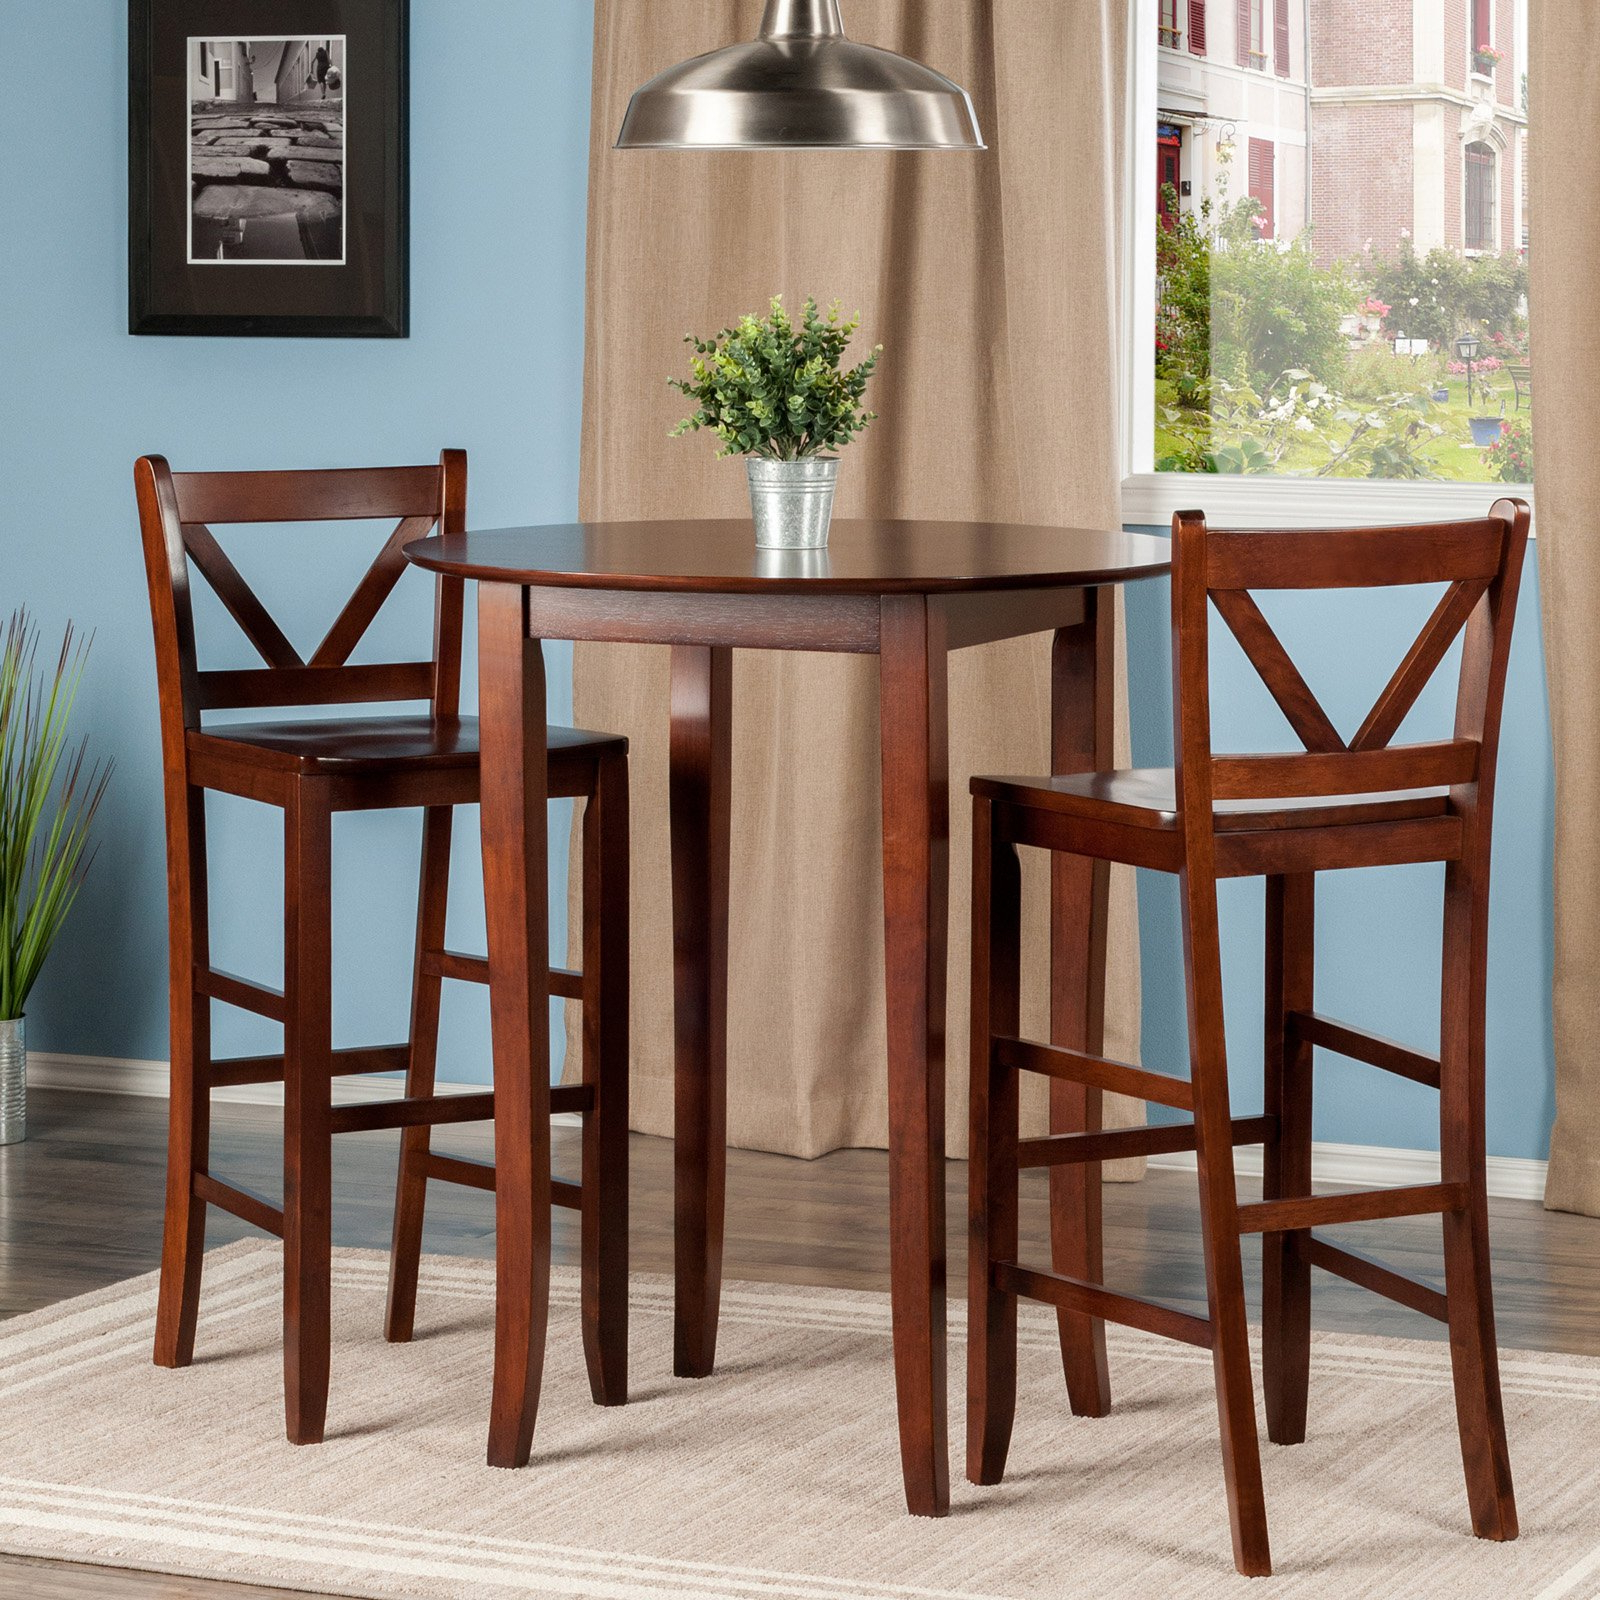 Winsome Trading Fiona 3 Piece Counter Height Round Dining Table Set Intended For Well Liked Winsome 3 Piece Counter Height Dining Sets (View 9 of 20)